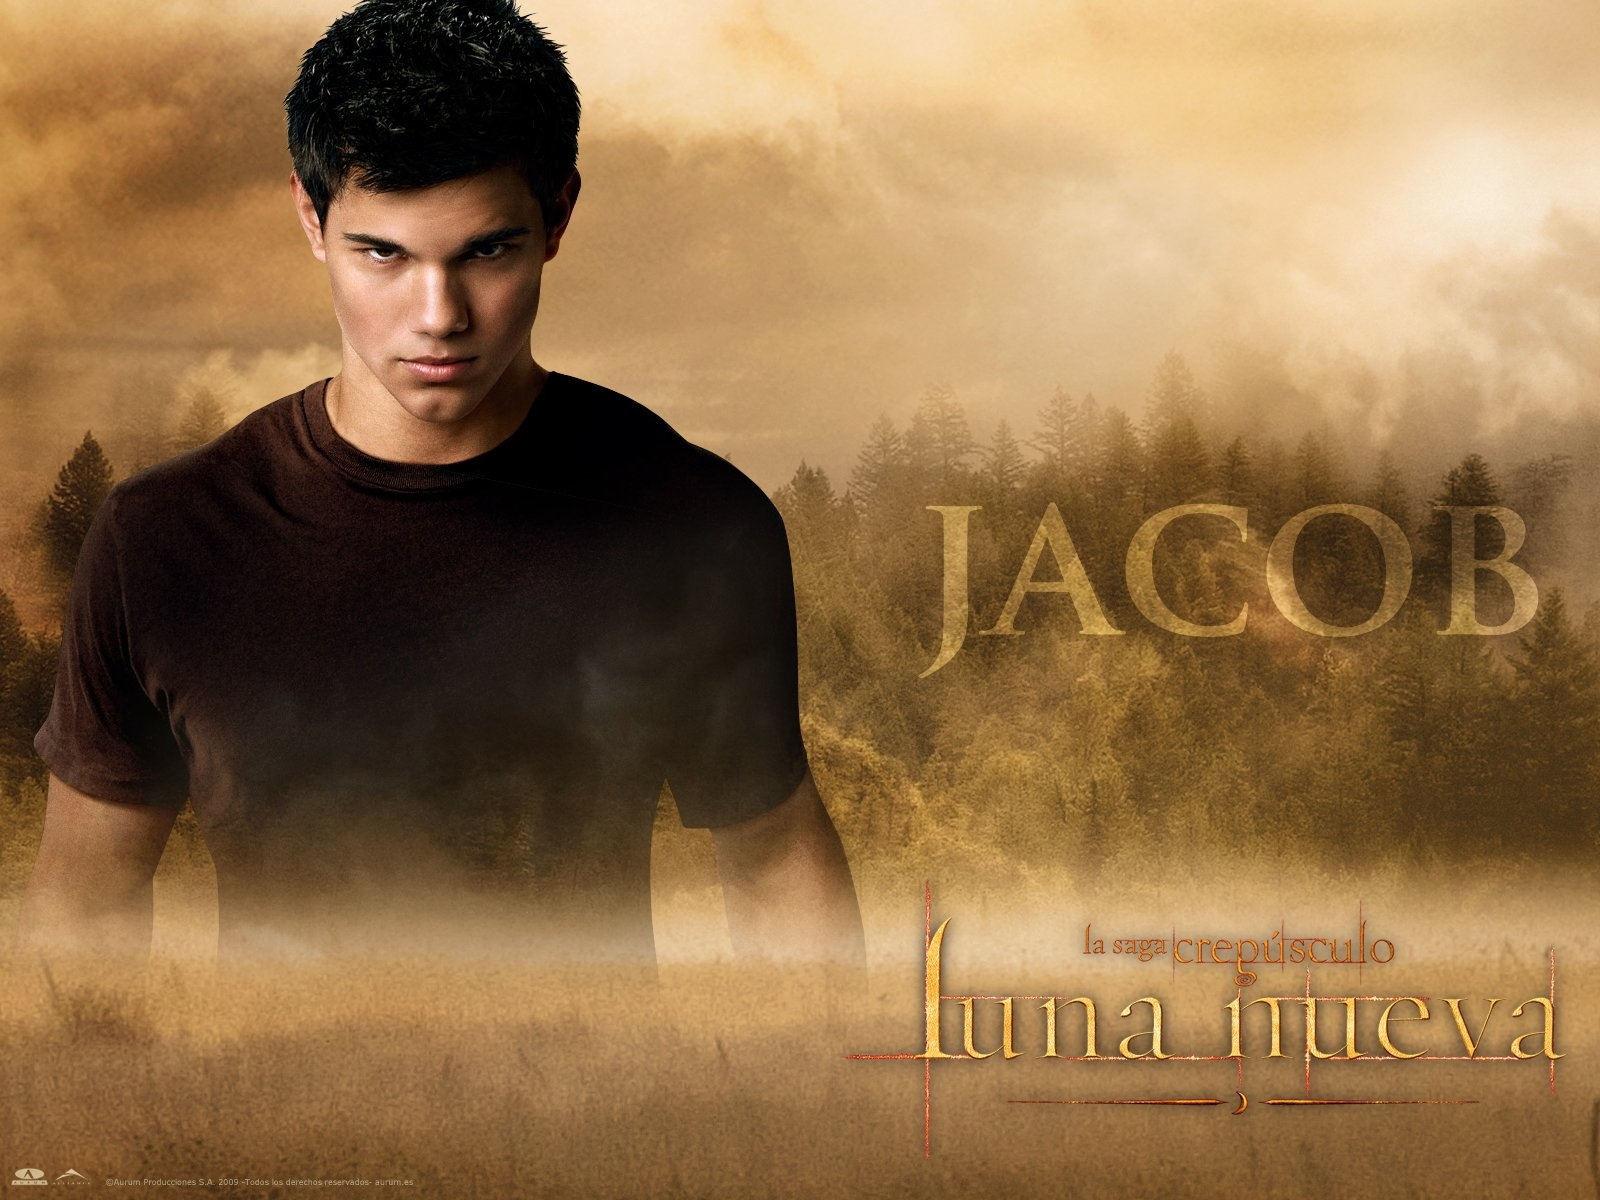 The-Twilight-Saga-New-Moon-Wallpapers22 - сумреки обои